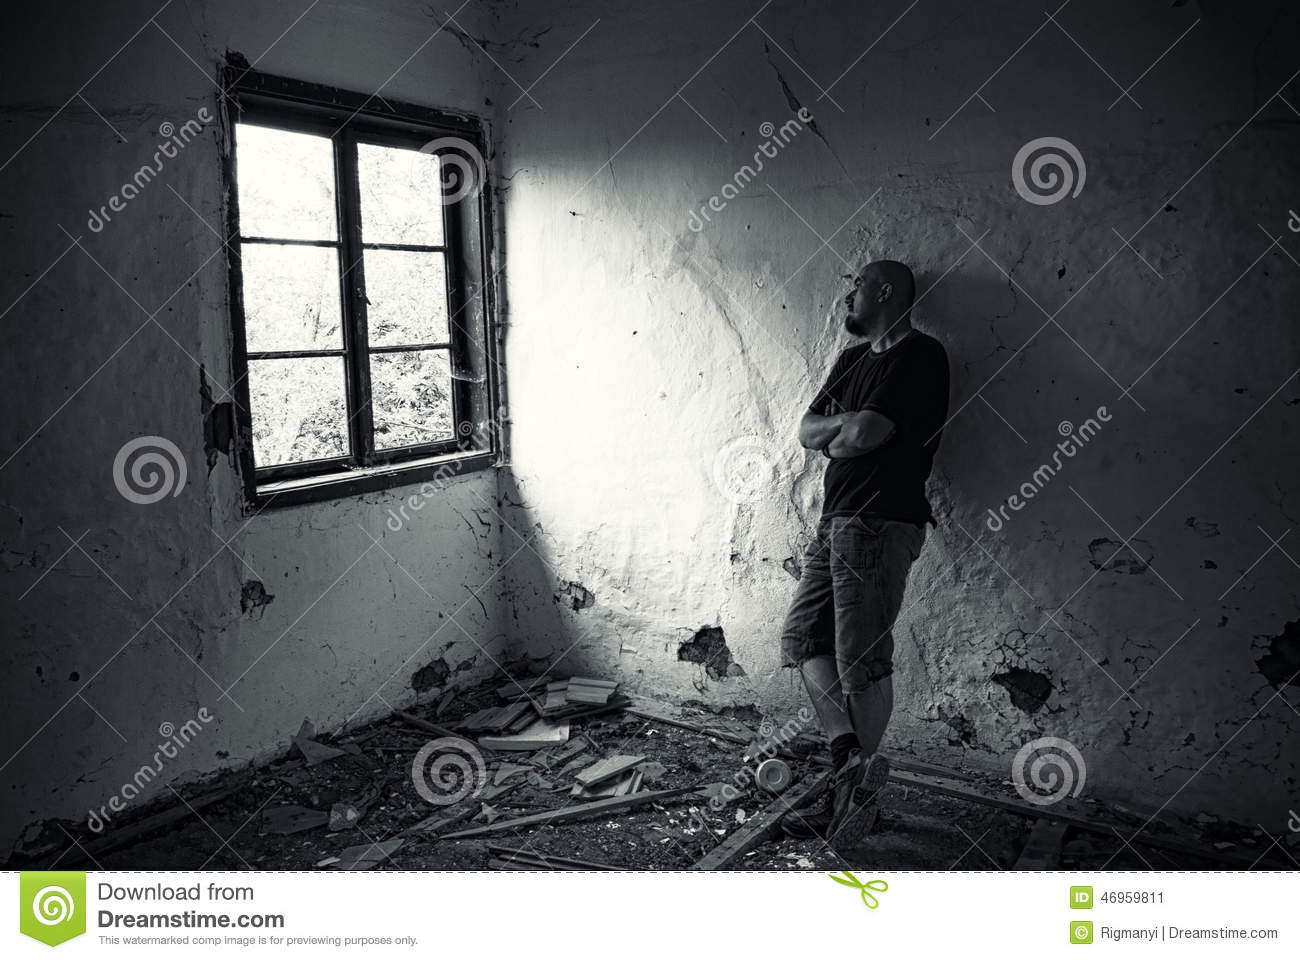 Home people men a sad young man walking home from work - Man In Ruined House Stock Image